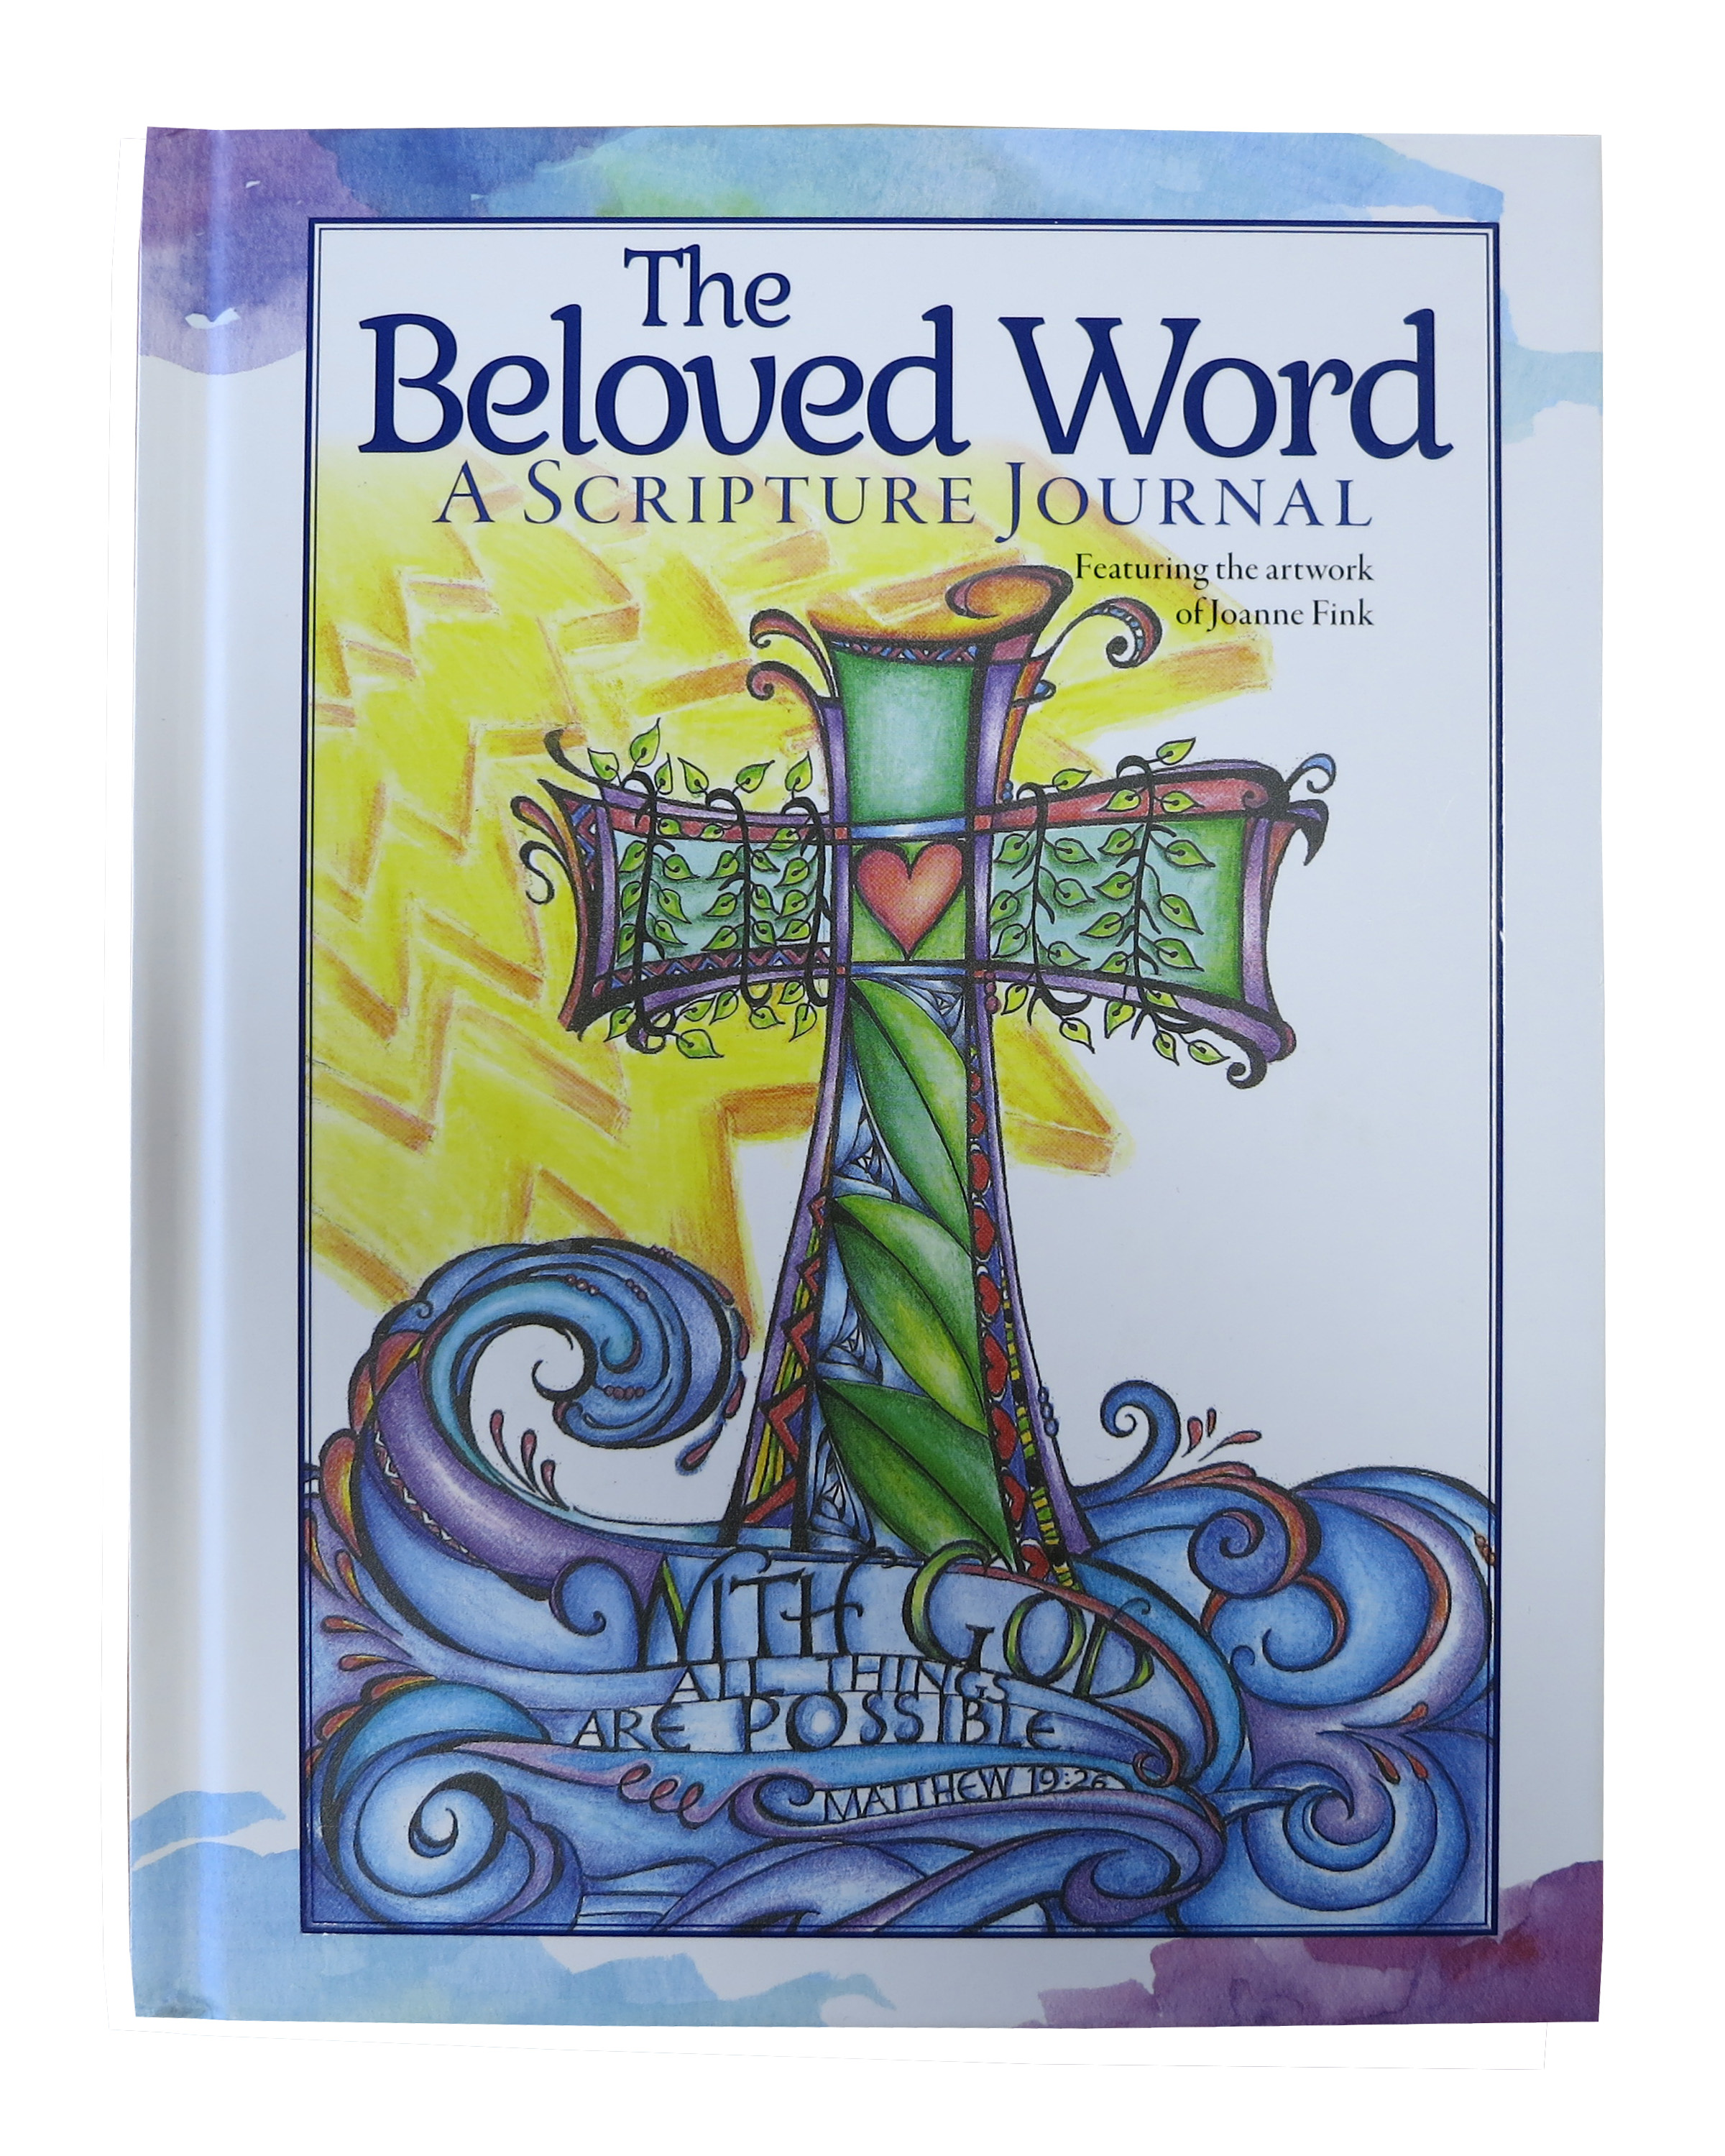 The Beloved Word